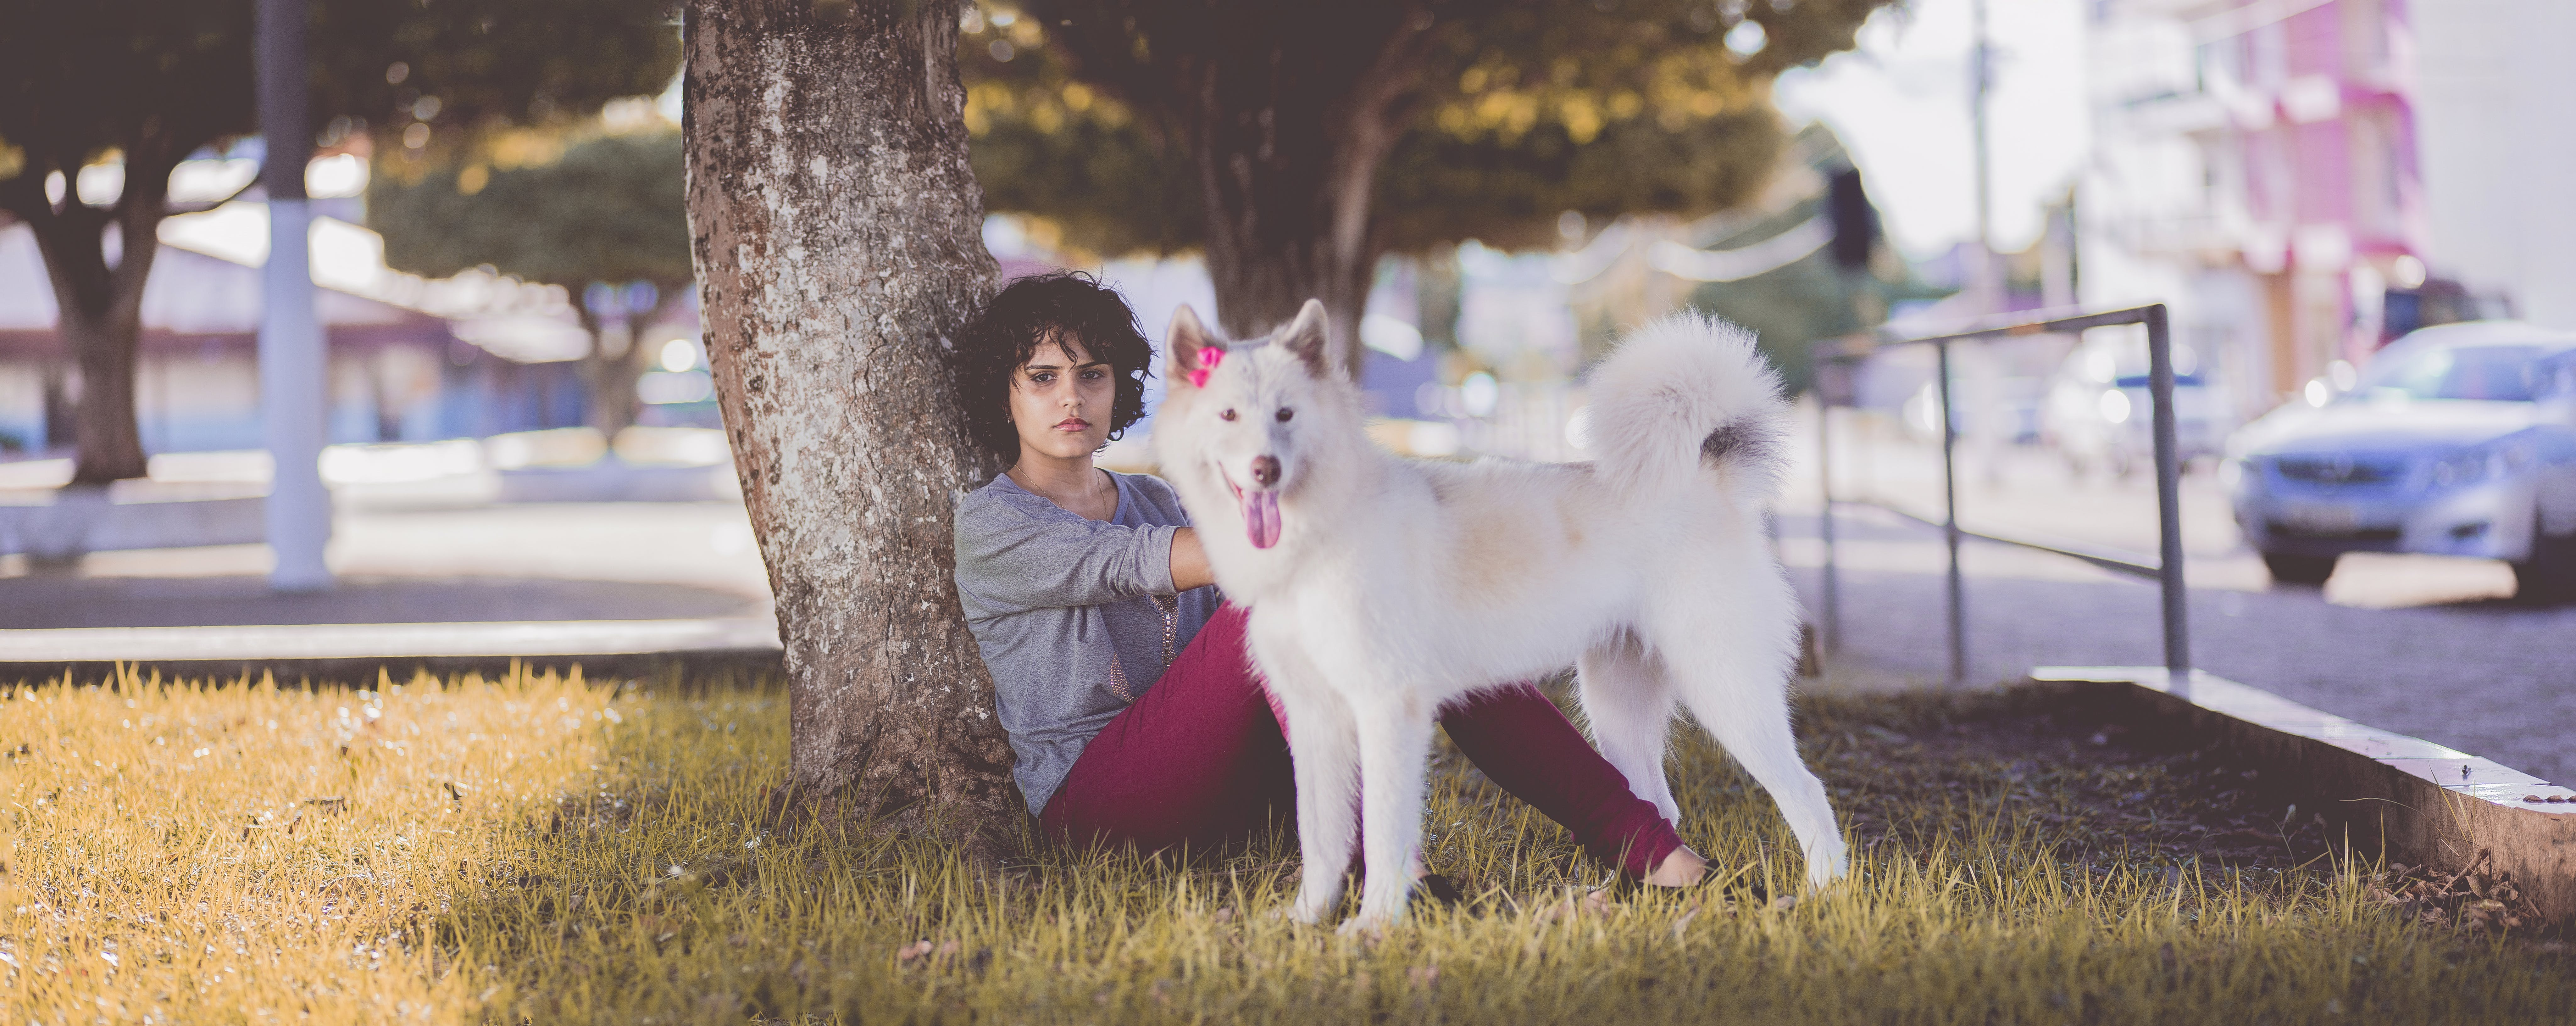 Woman in Gray Long Sleeve Top and Red Pants Sitting Beside Tree and White Medium Coated Dog